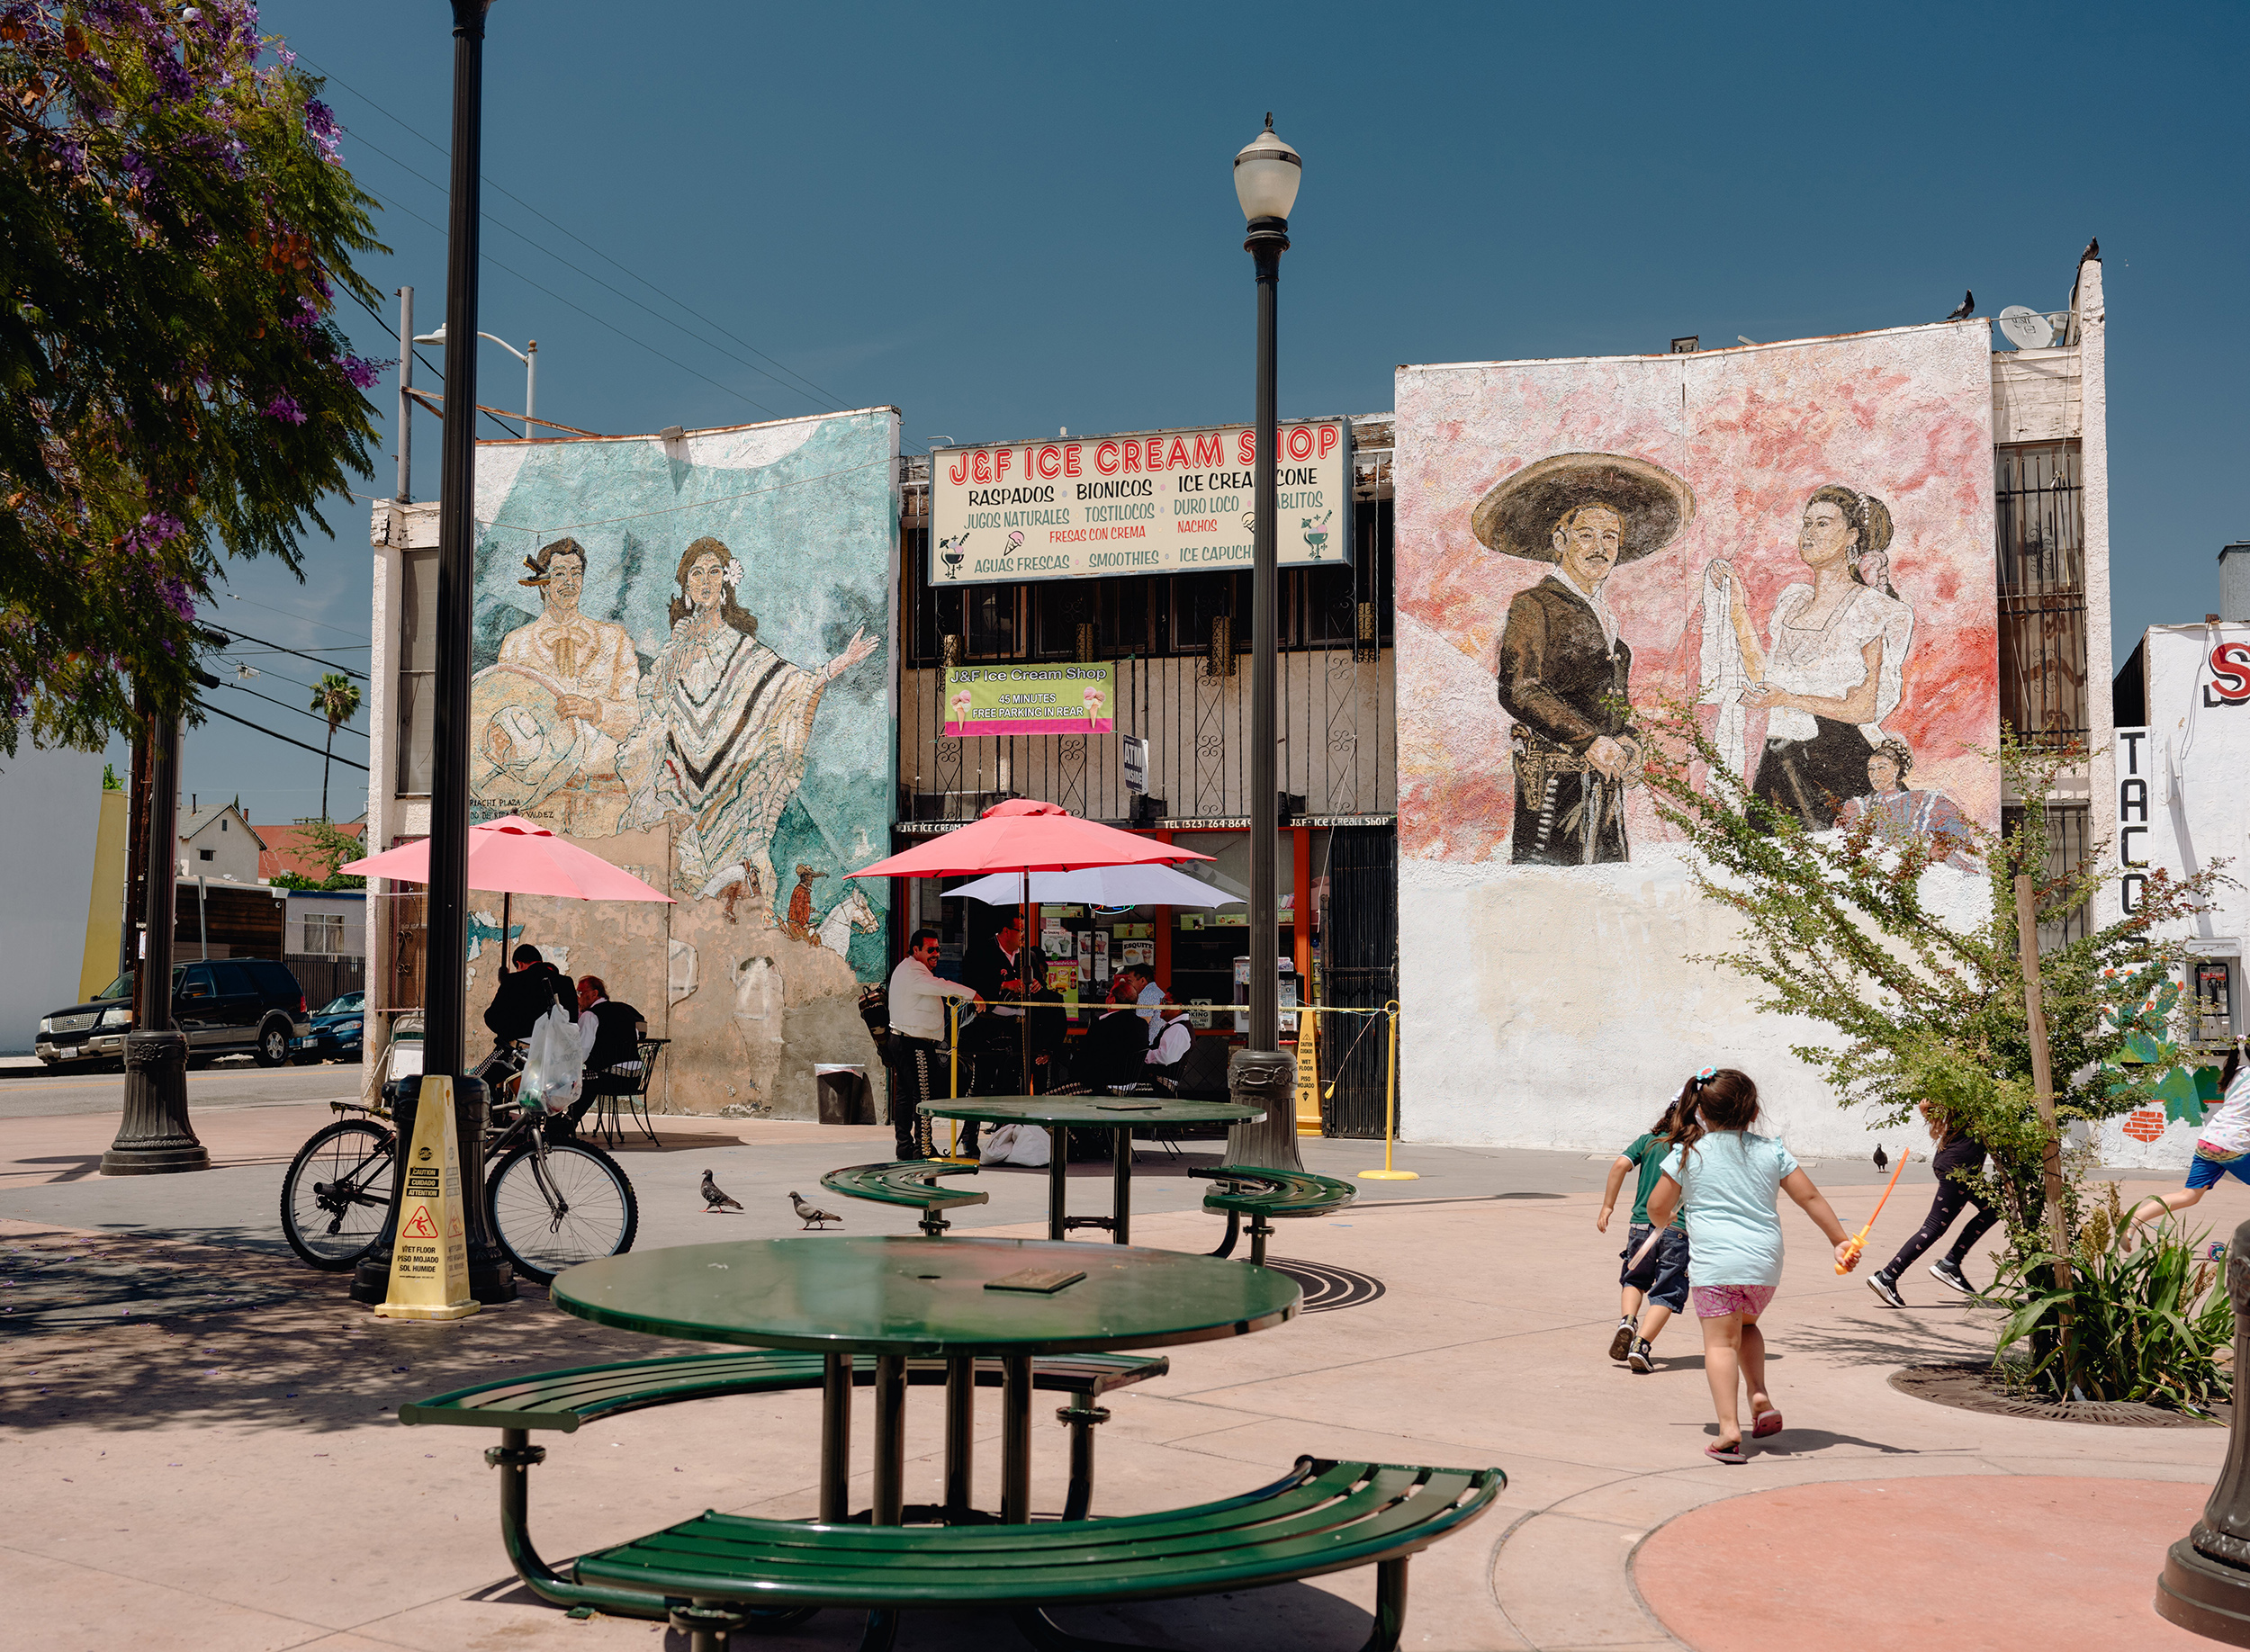 Children play by an ice cream shop surrounded by murals in Boyle Heights.